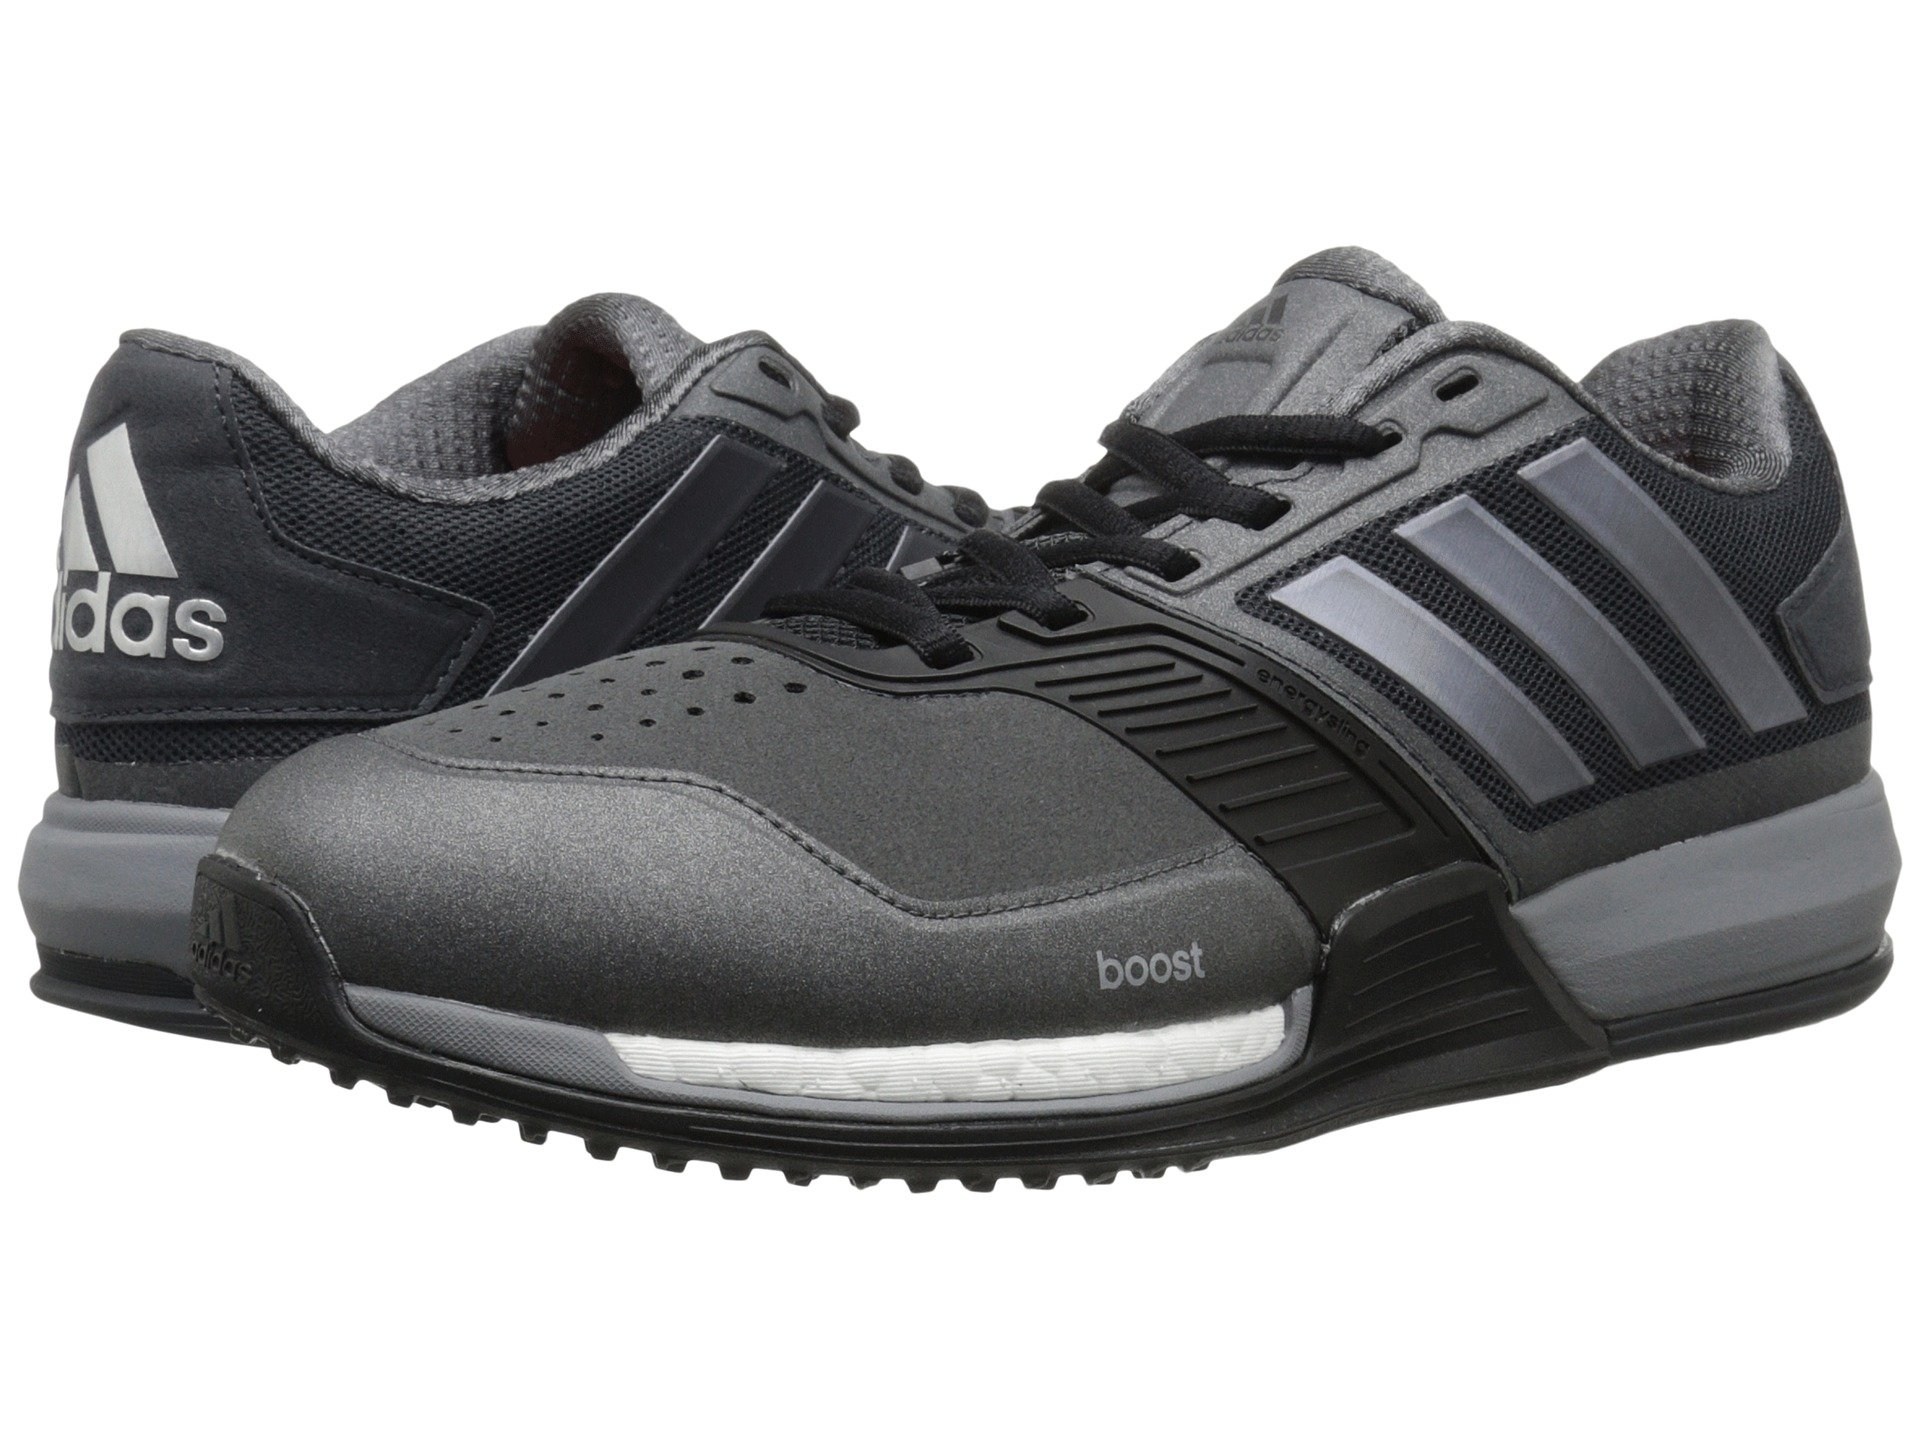 new style ccfe8 2a8a9 adidas crazytrain boost,adidas Crazytrain Boost